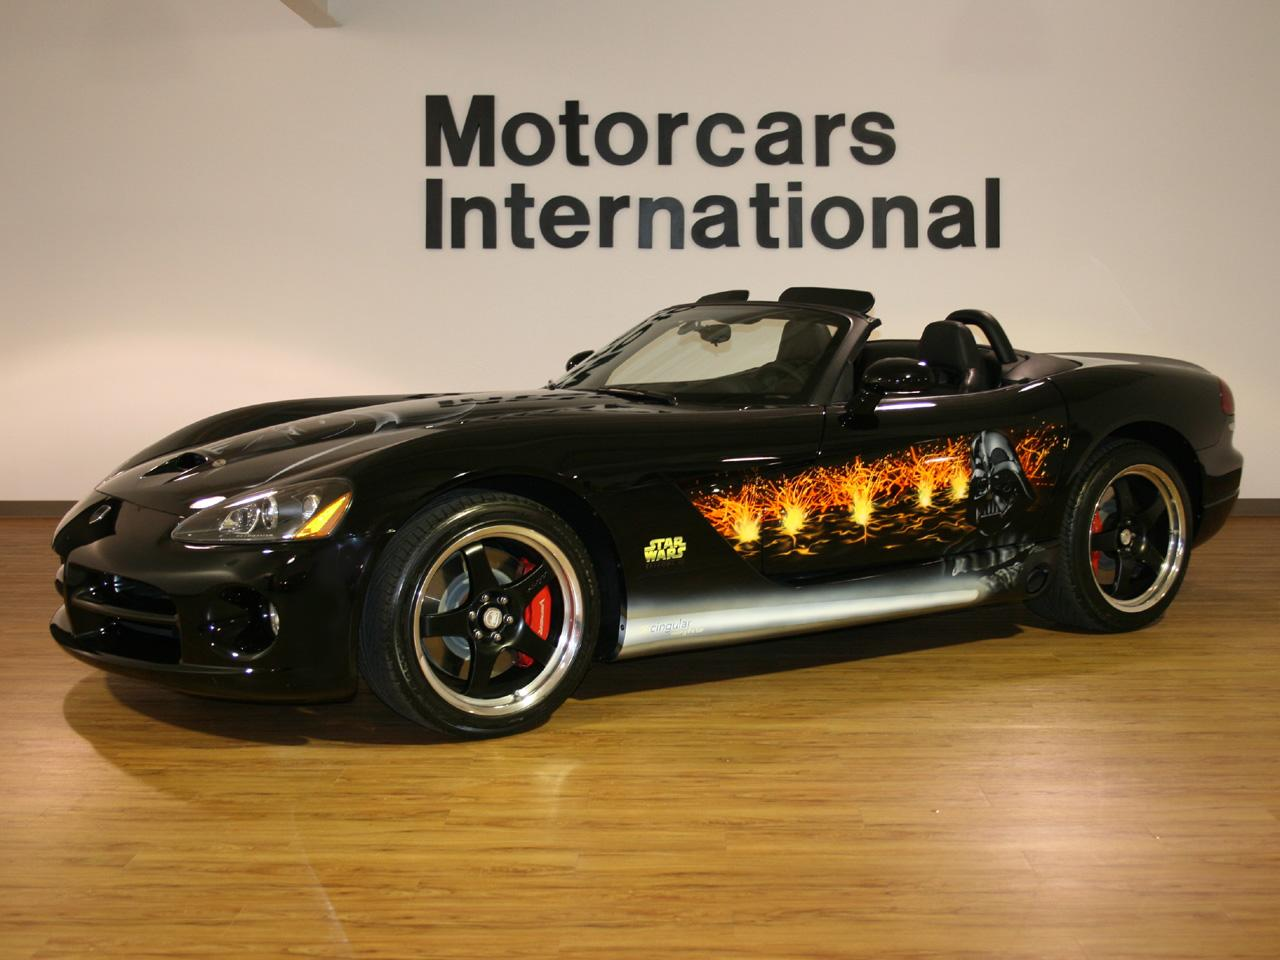 2005 Dodge Viper SRT-10 Roadster